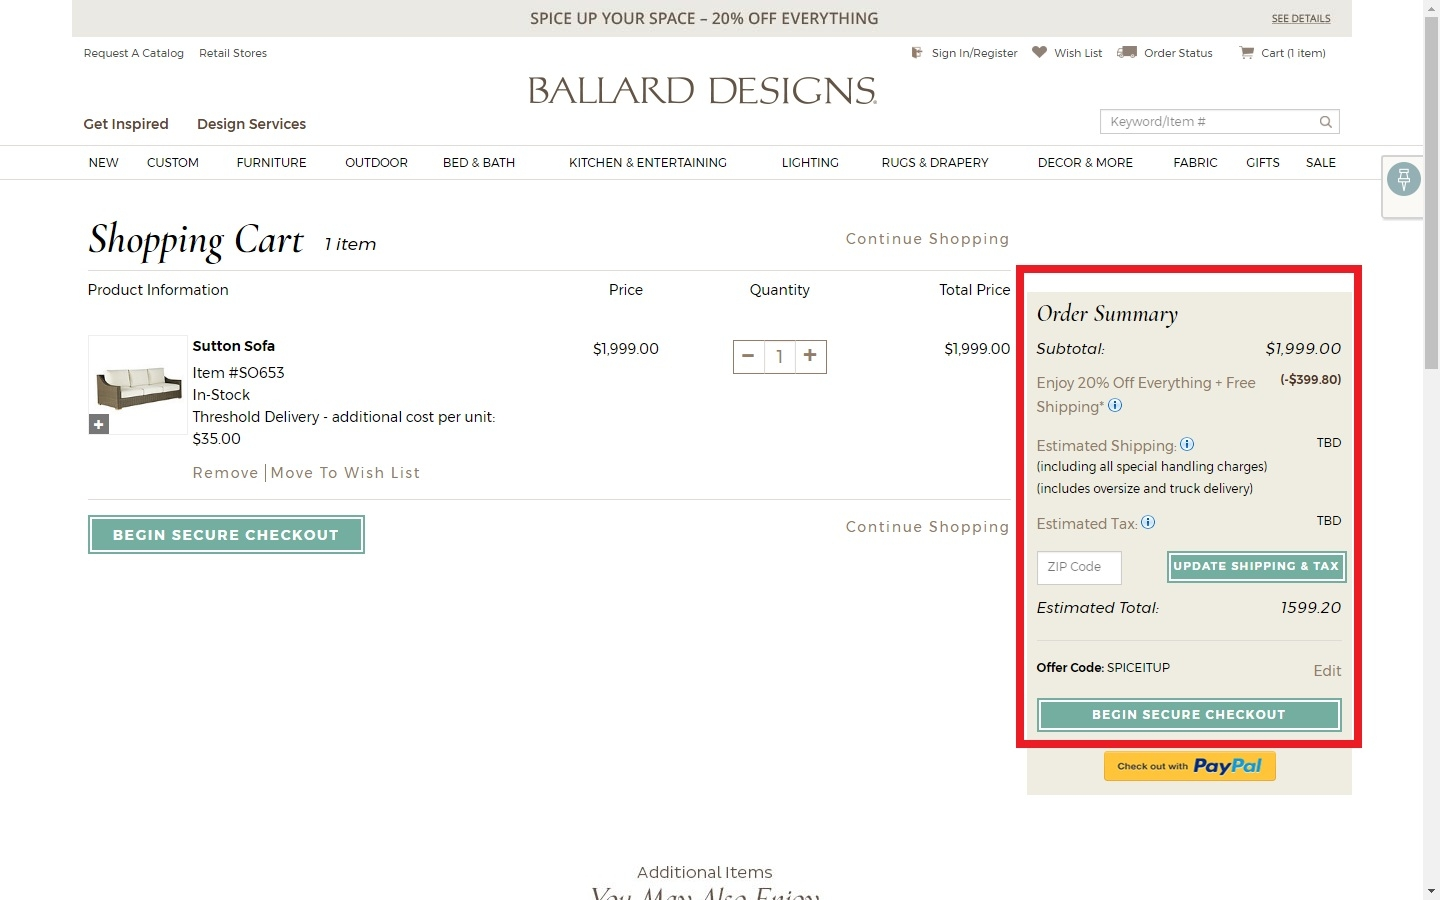 Ballard designs online coupons free shipping